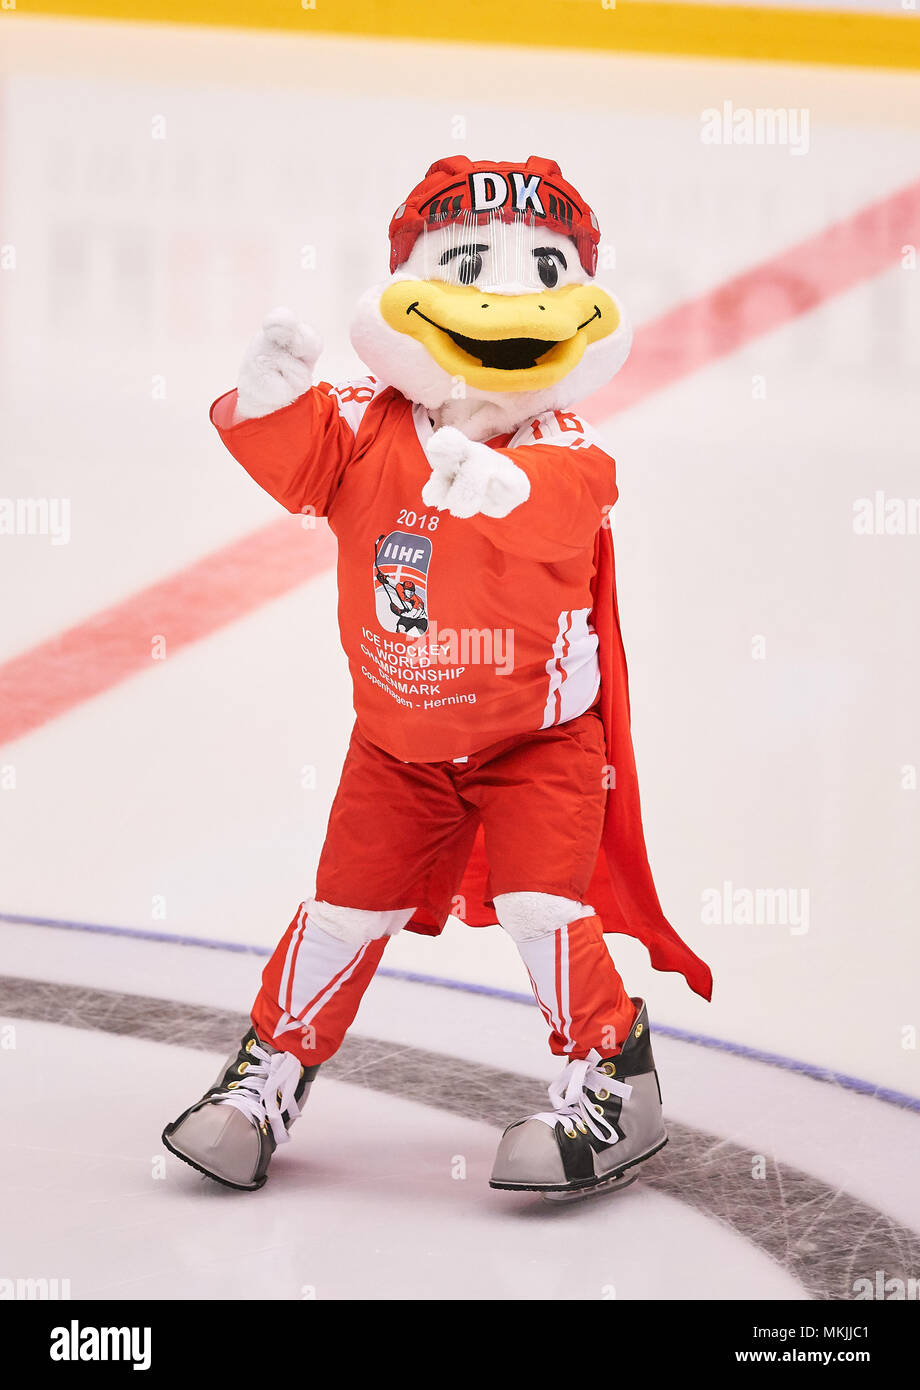 Ice Hockey World Cup 2018, Herning, May 07, 2018 Mascot DUCKLY GERMANY - USA  0-3 IIHF Icehockey World Championships 2018 DEB , in Herning, Denmark May 07, 2018 © Peter Schatz / Alamy Live News Stock Photo